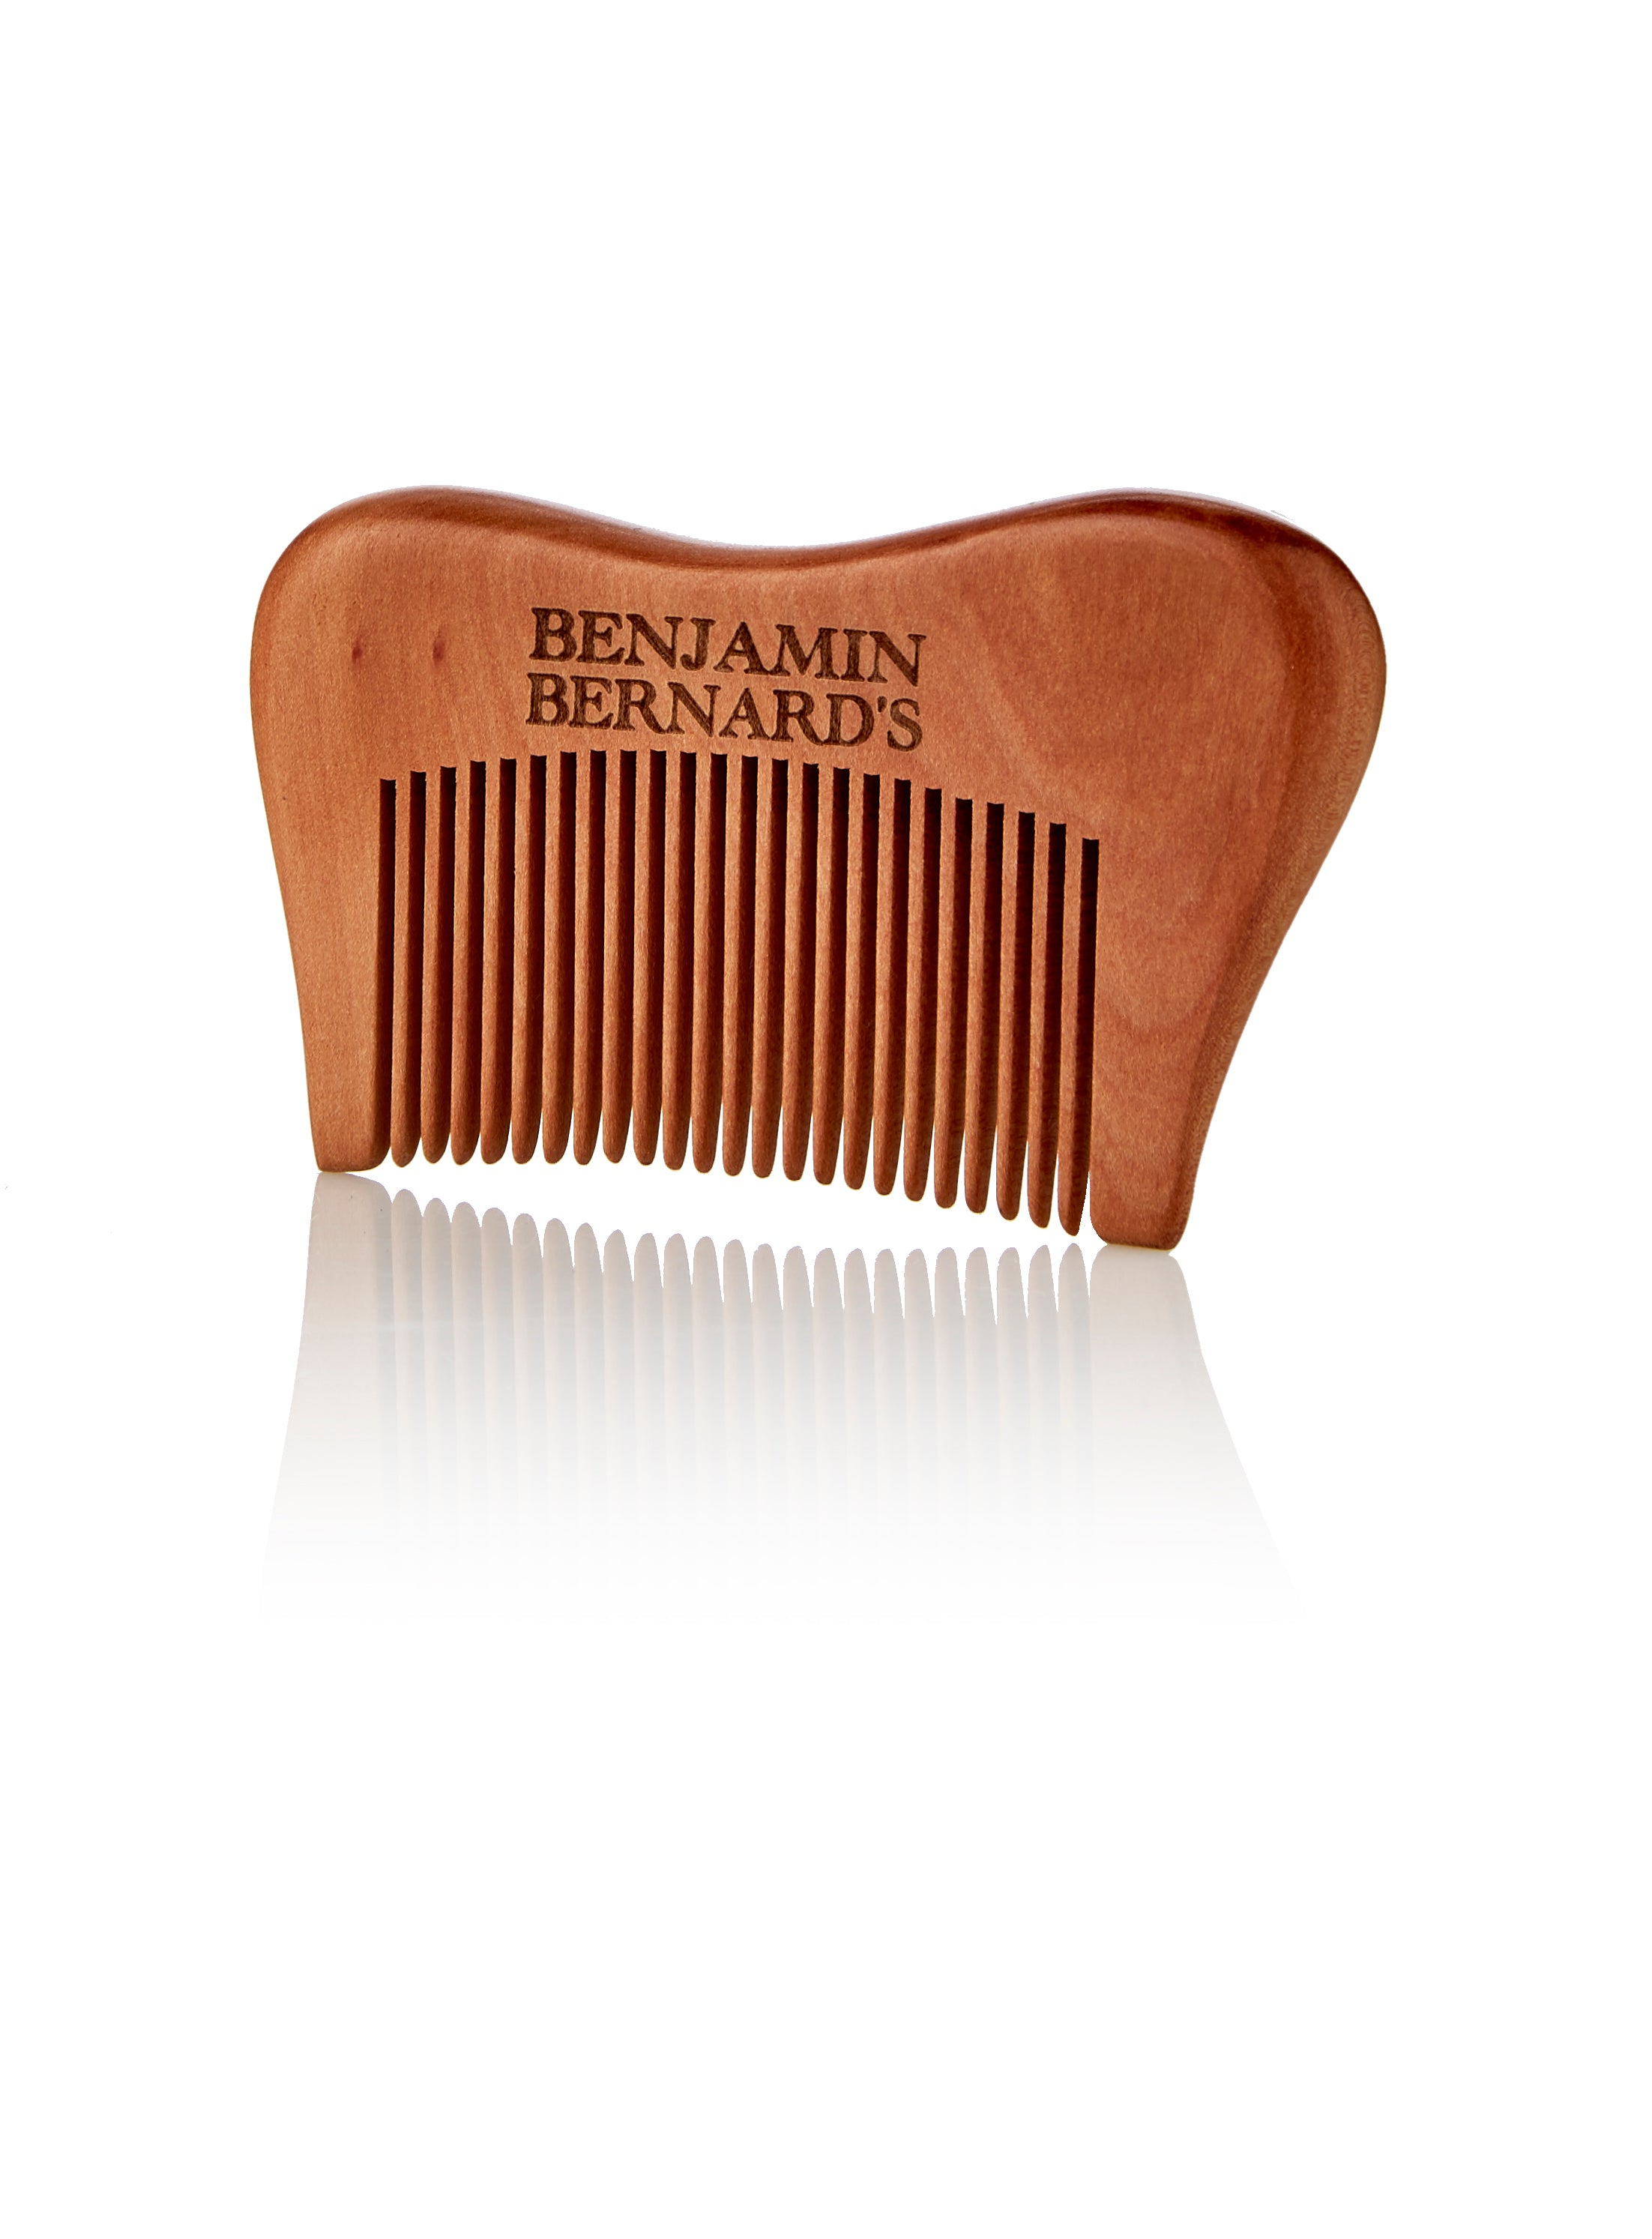 Embossed Beard Comb